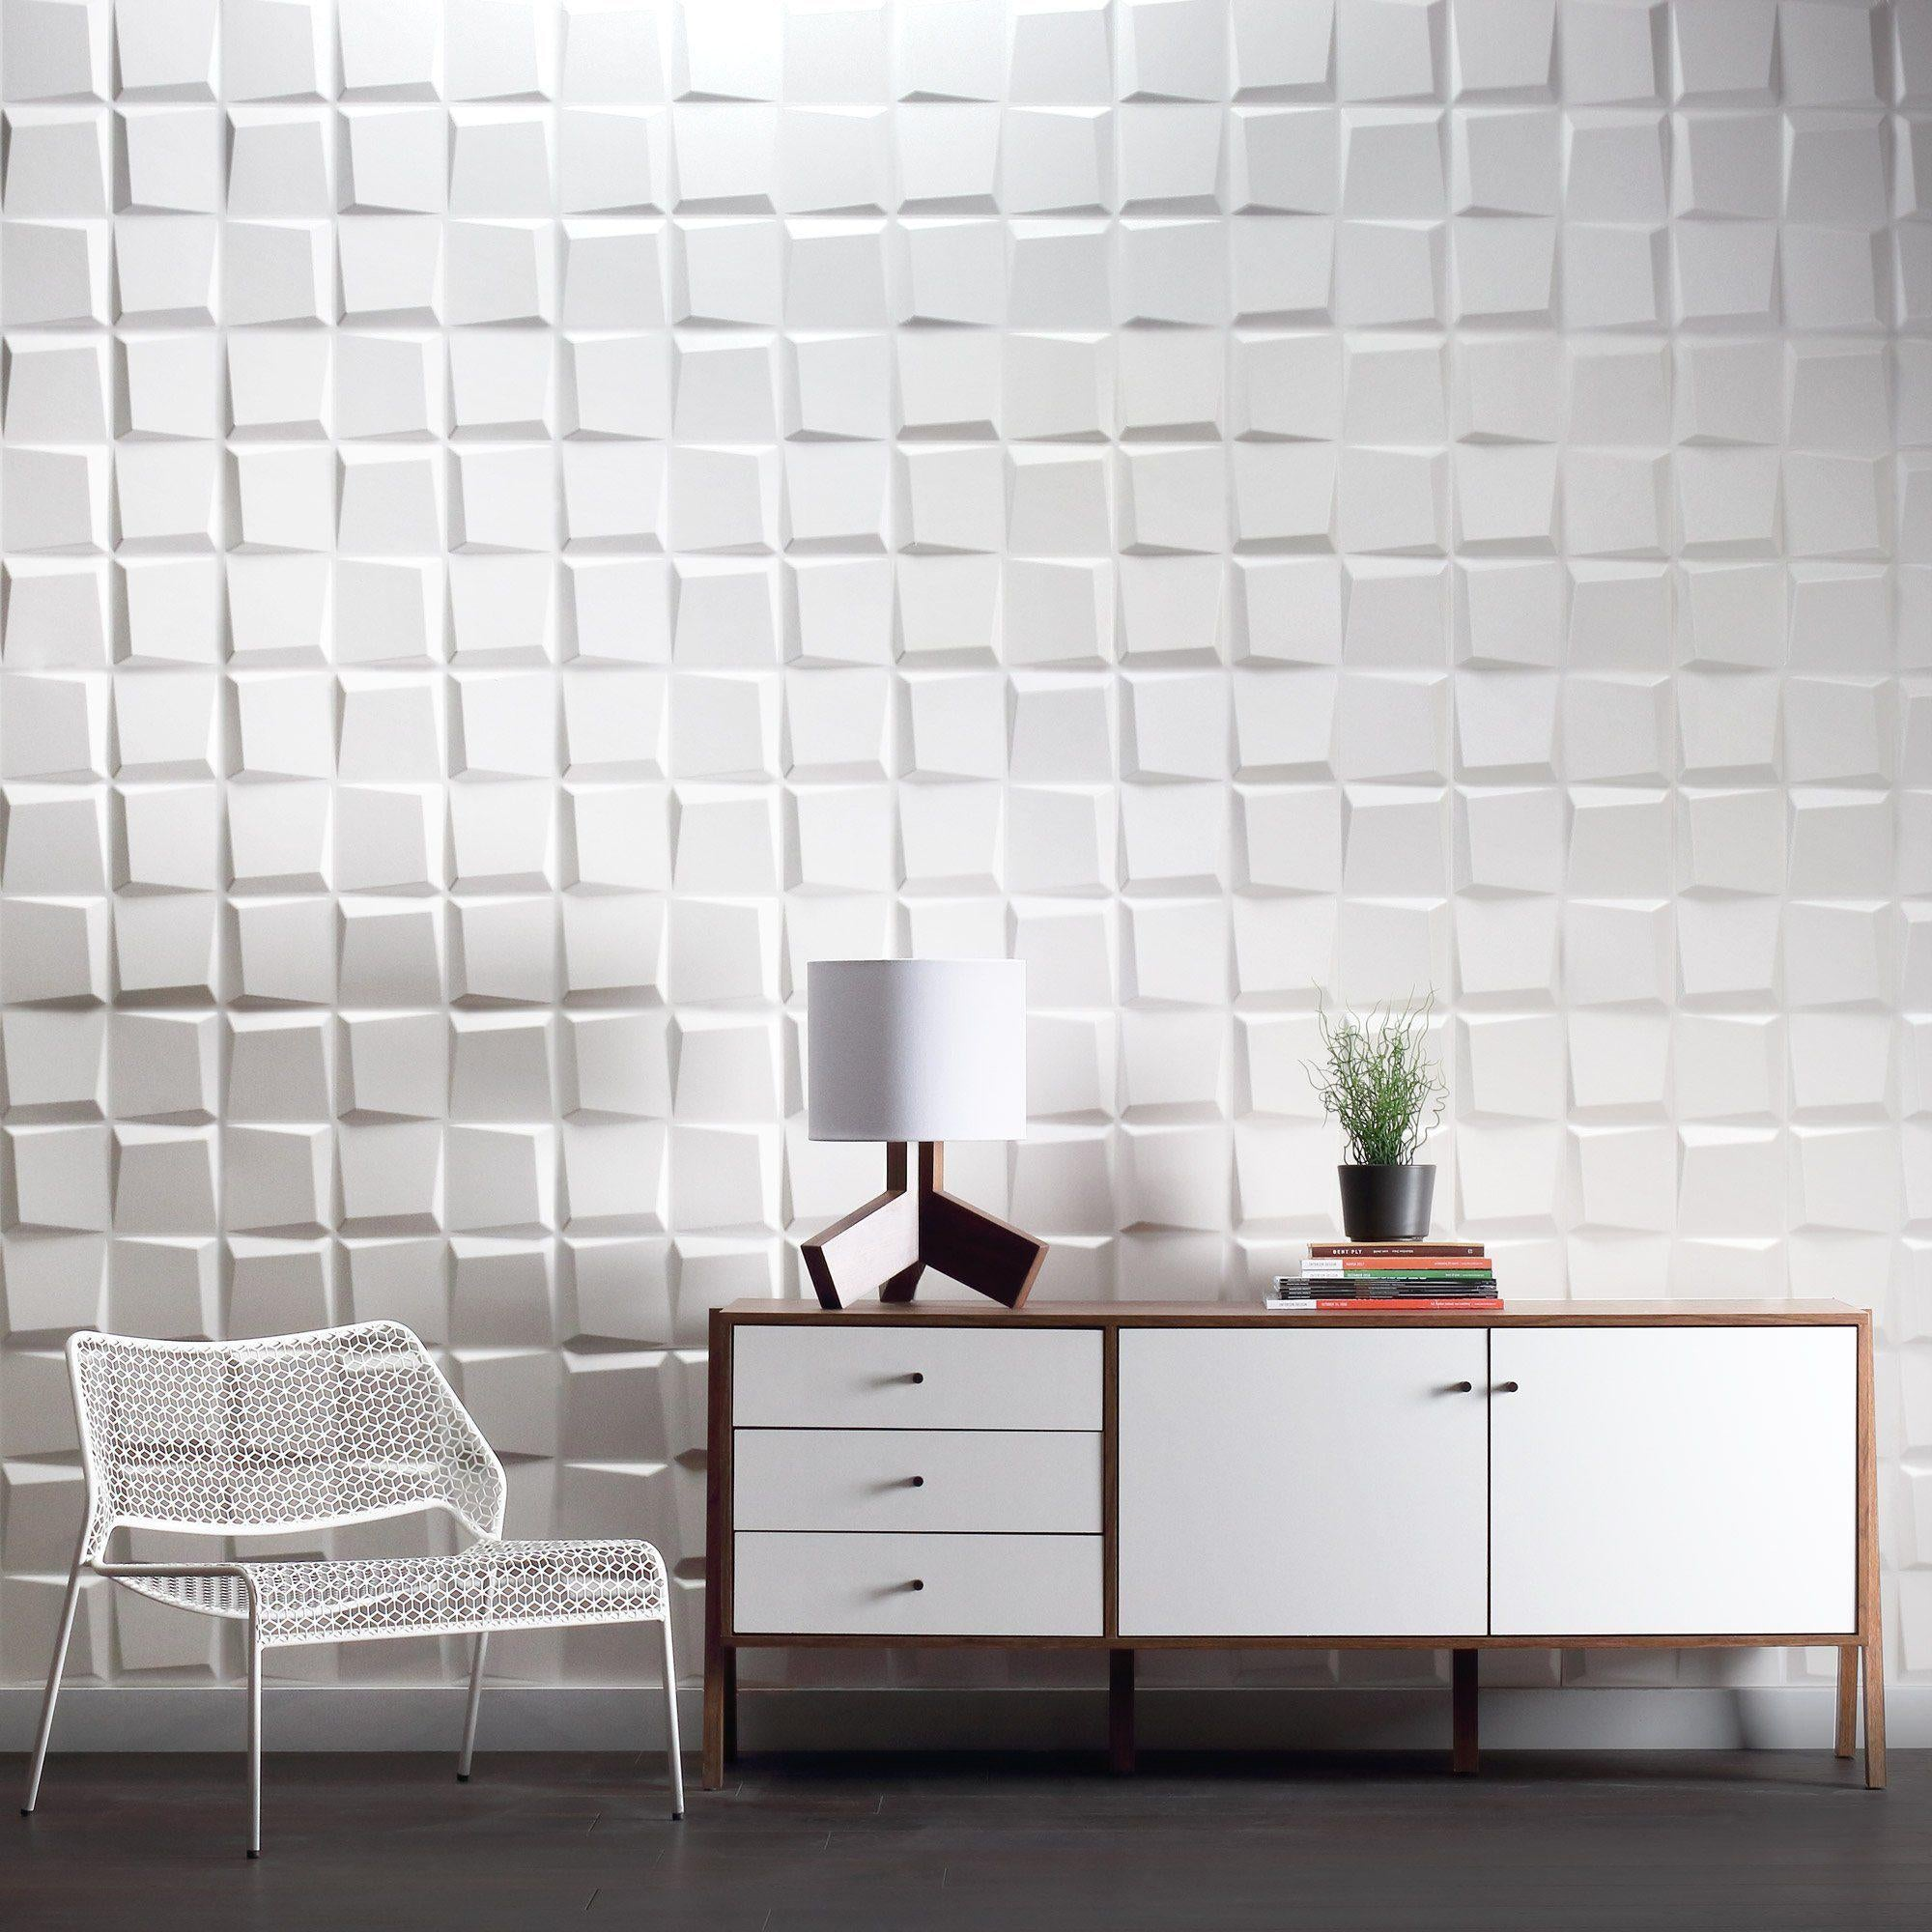 Modern Furnishings | 3D Wall Panels | Dimensional Walls | Cubit Outlet Wall  Flats U2013 Inhabit